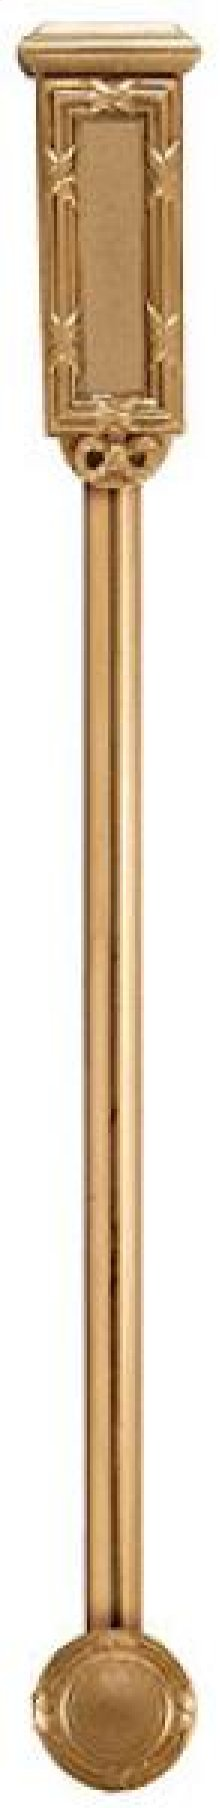 Surface Bolt Reed & Ribbon Style